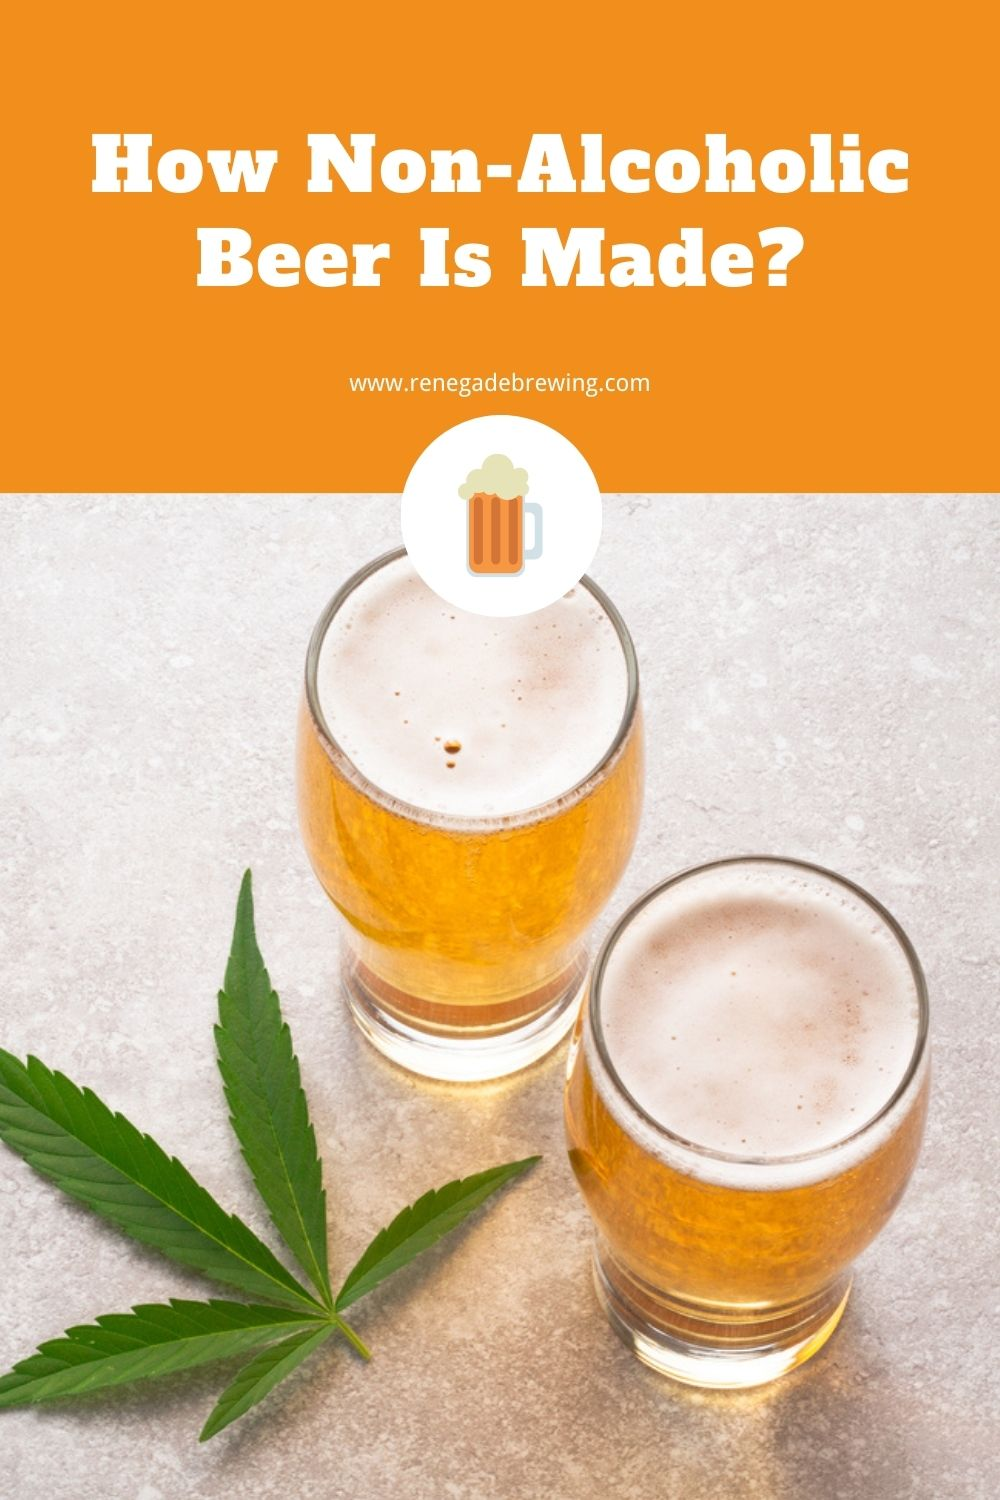 How Non-Alcoholic Beer Is Made 2